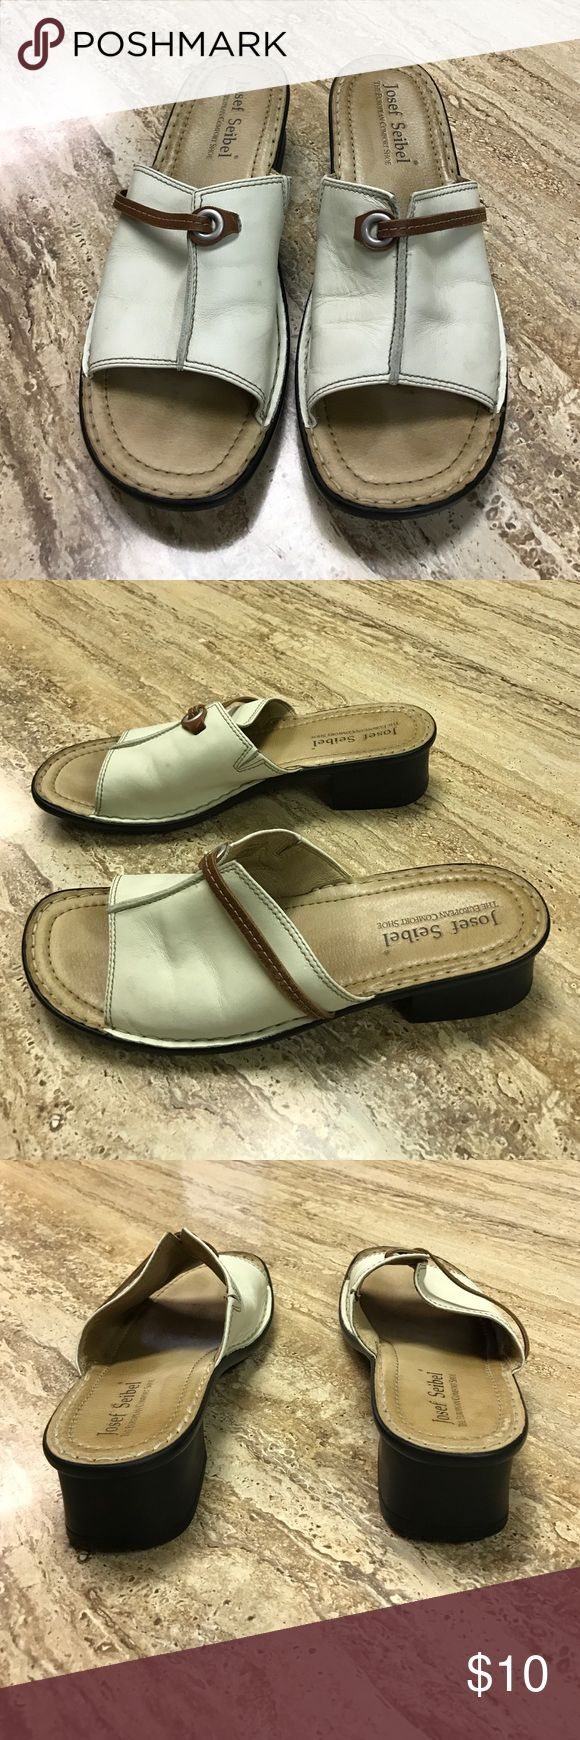 Off white and black clogs Women's size 41(11). Josef Seibel clogs. Has some scuffs on top but little wear to soles!  A01/34 Josef Seibel Shoes Mules & Clogs